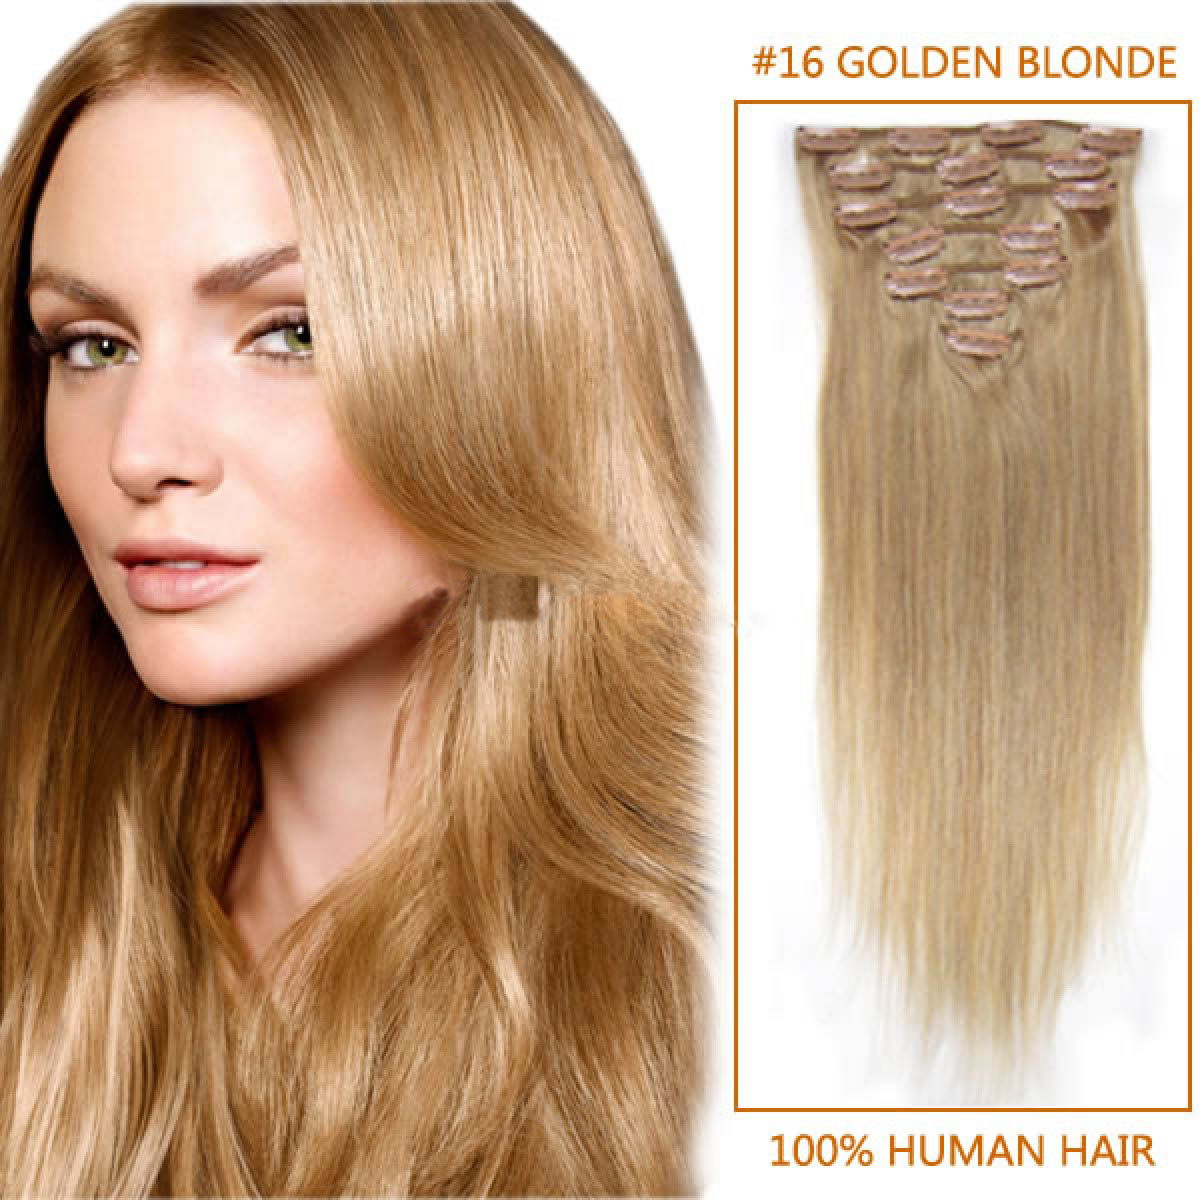 15 Inch 16 Golden Blonde Clip In Human Hair Extensions 12pcs